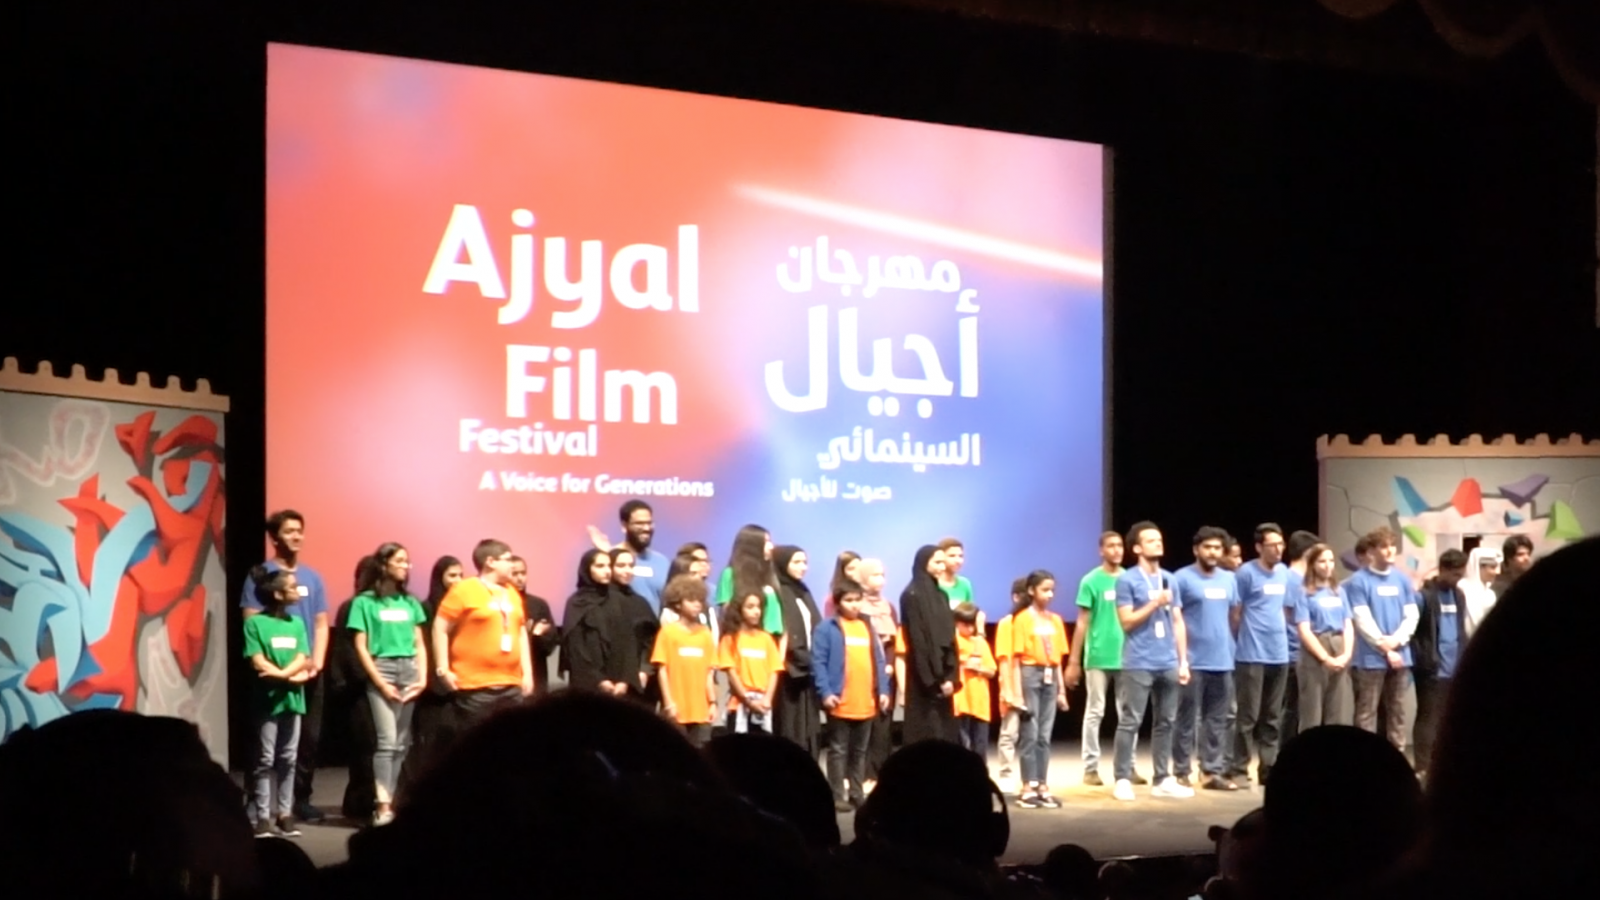 Seventh Ajyal Film Festival to feature 96 inspirational films from 39 countries